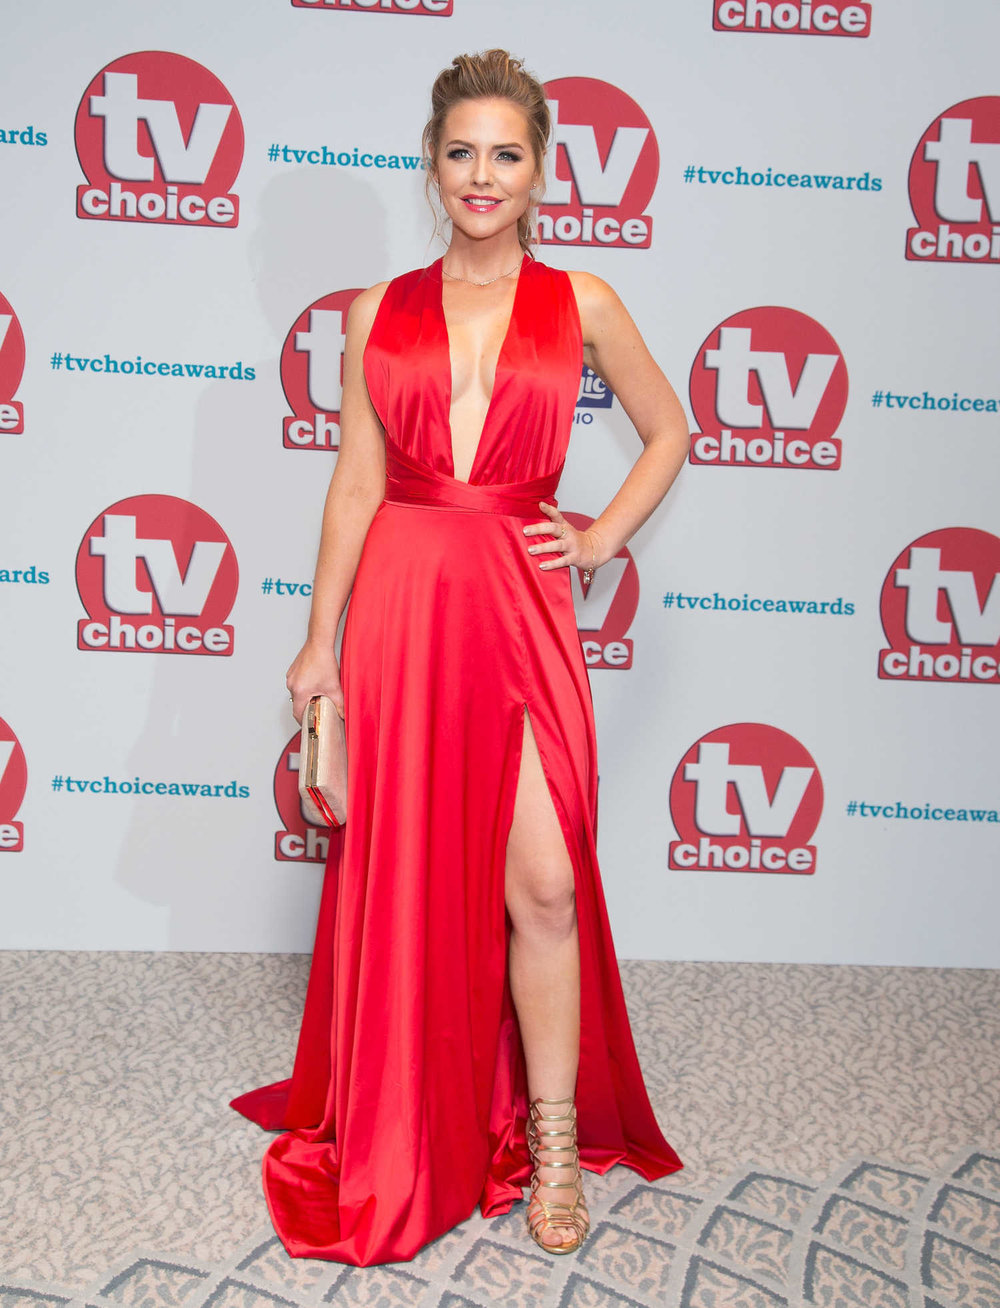 stephanie-waring-at-tv-choice-awards-at-the-dorchester-in-london-1.jpg